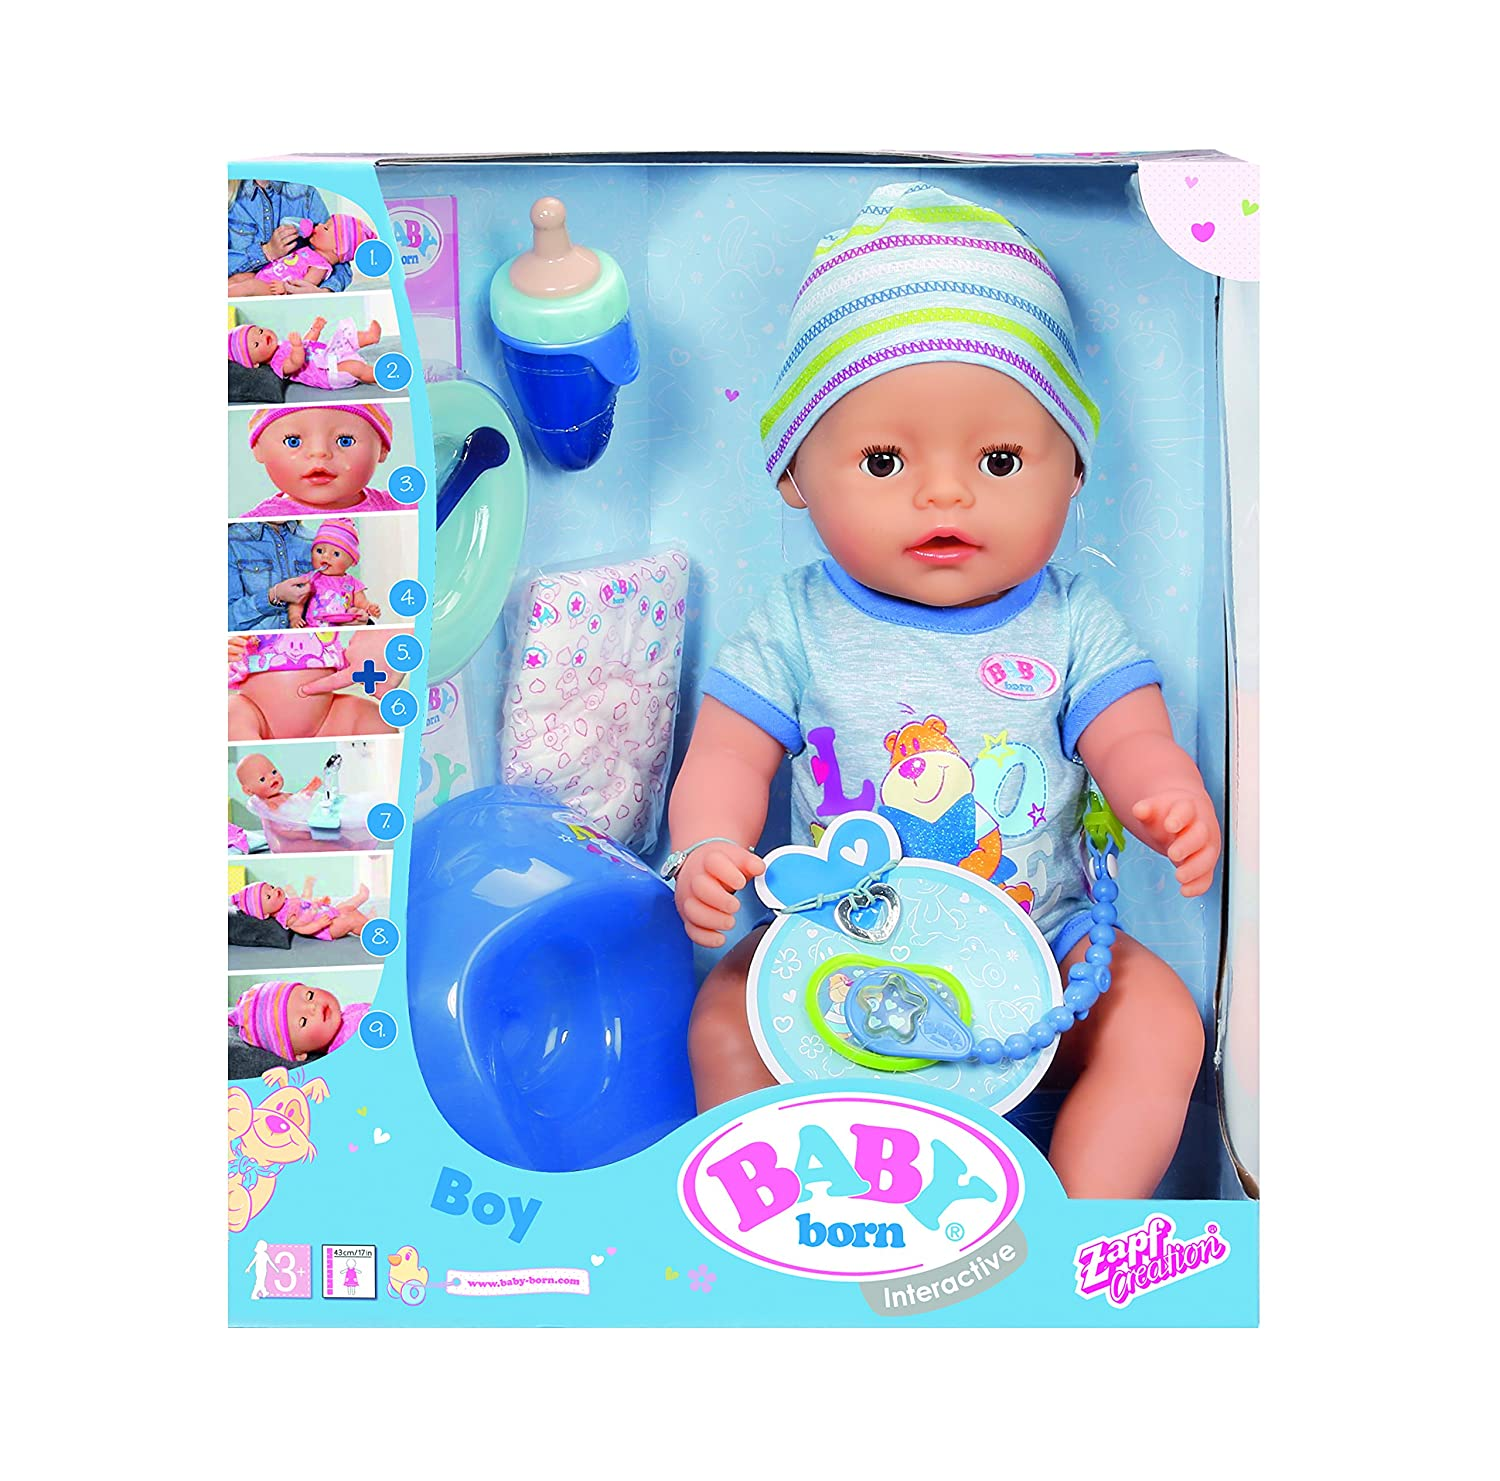 2b9f06b6f45 Amazon.com   Baby Born Interactive Doll Boy   Baby